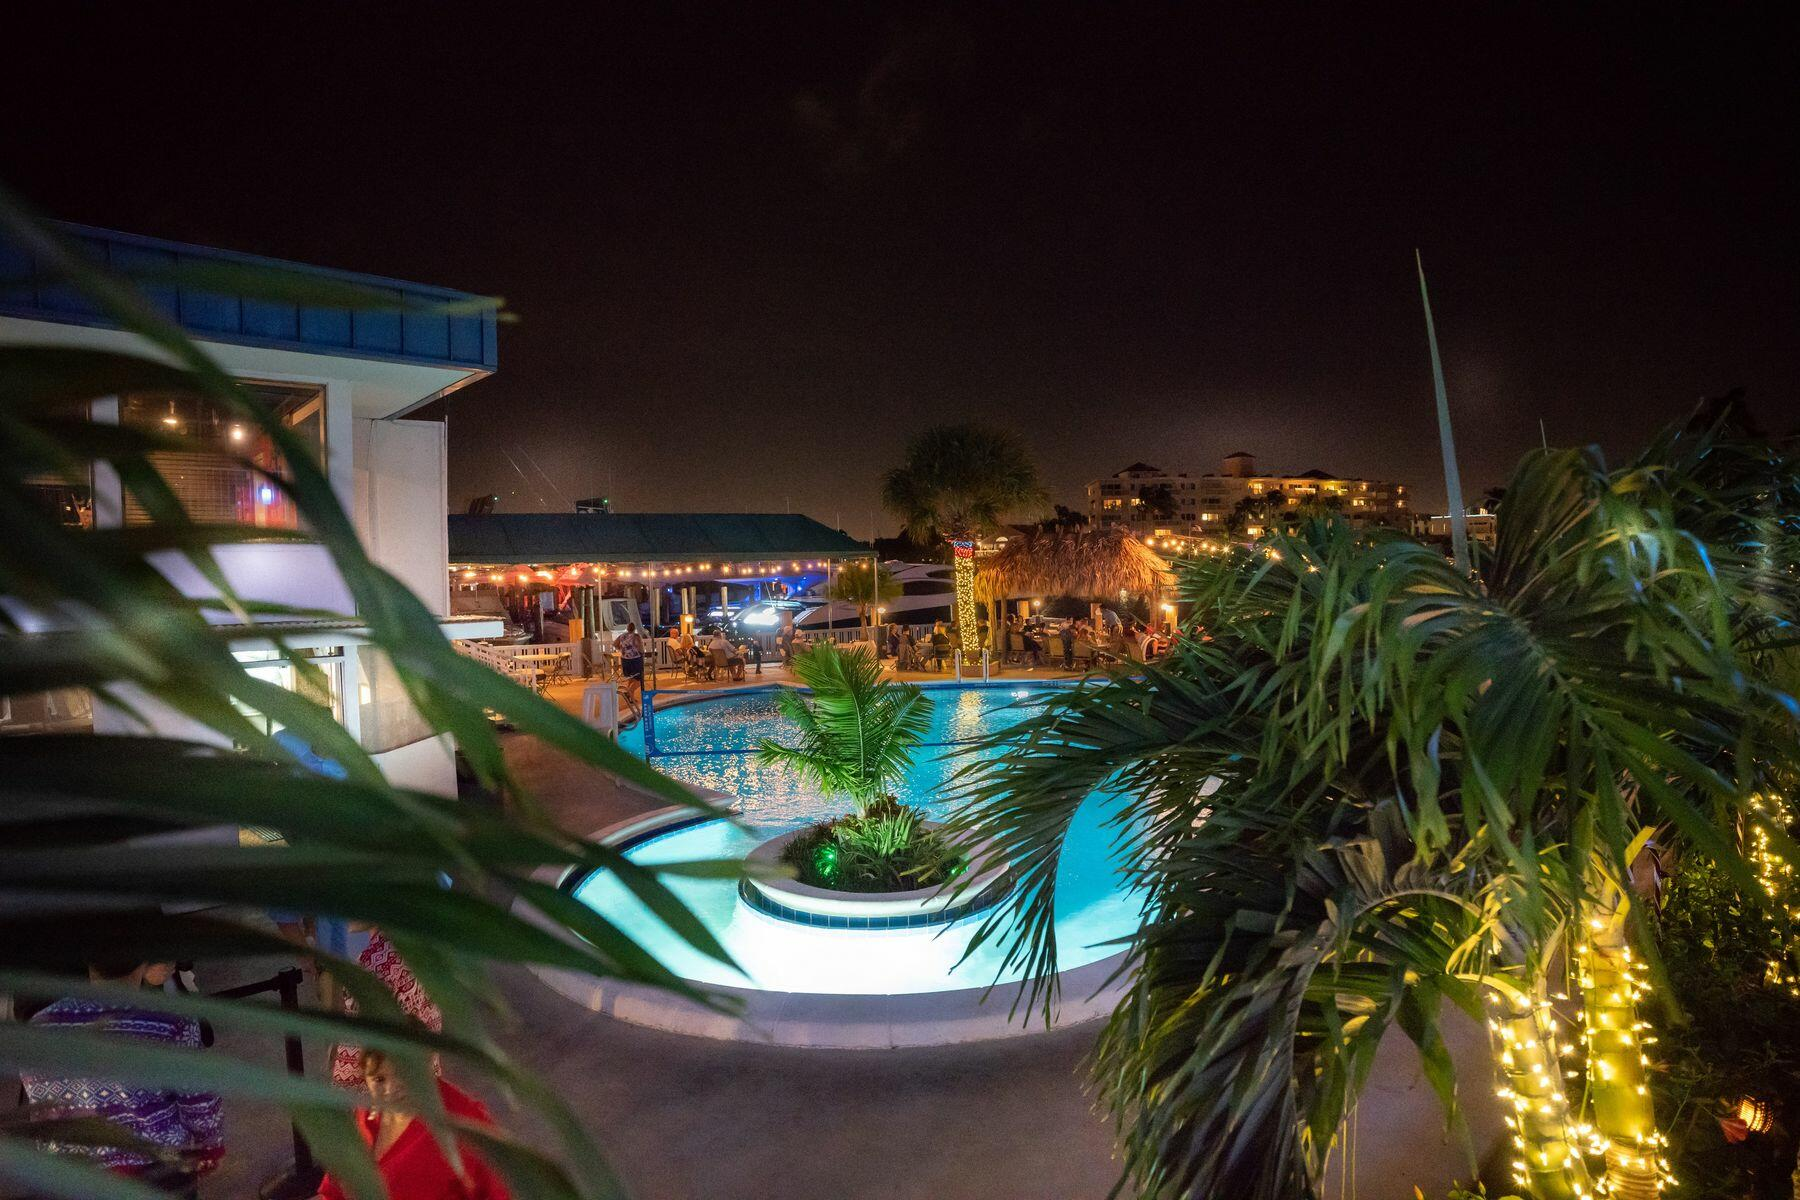 Sands Harbor - Pool - Night Shot